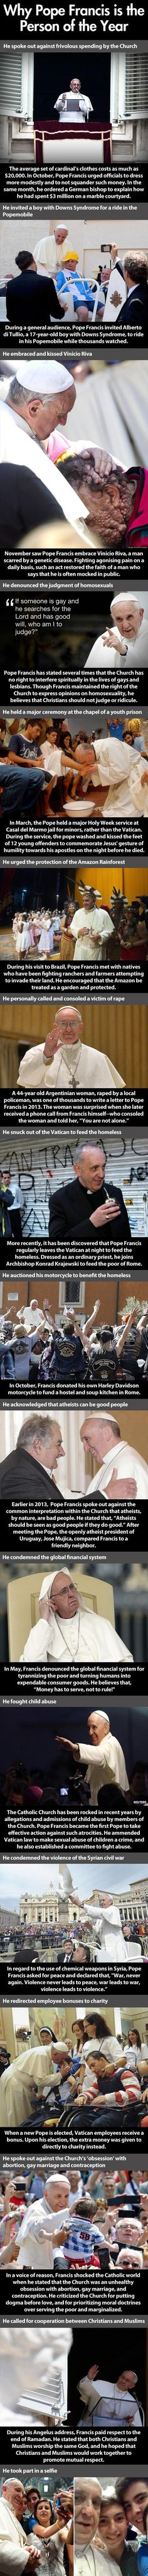 Pope Francis is a pretty cool guy.